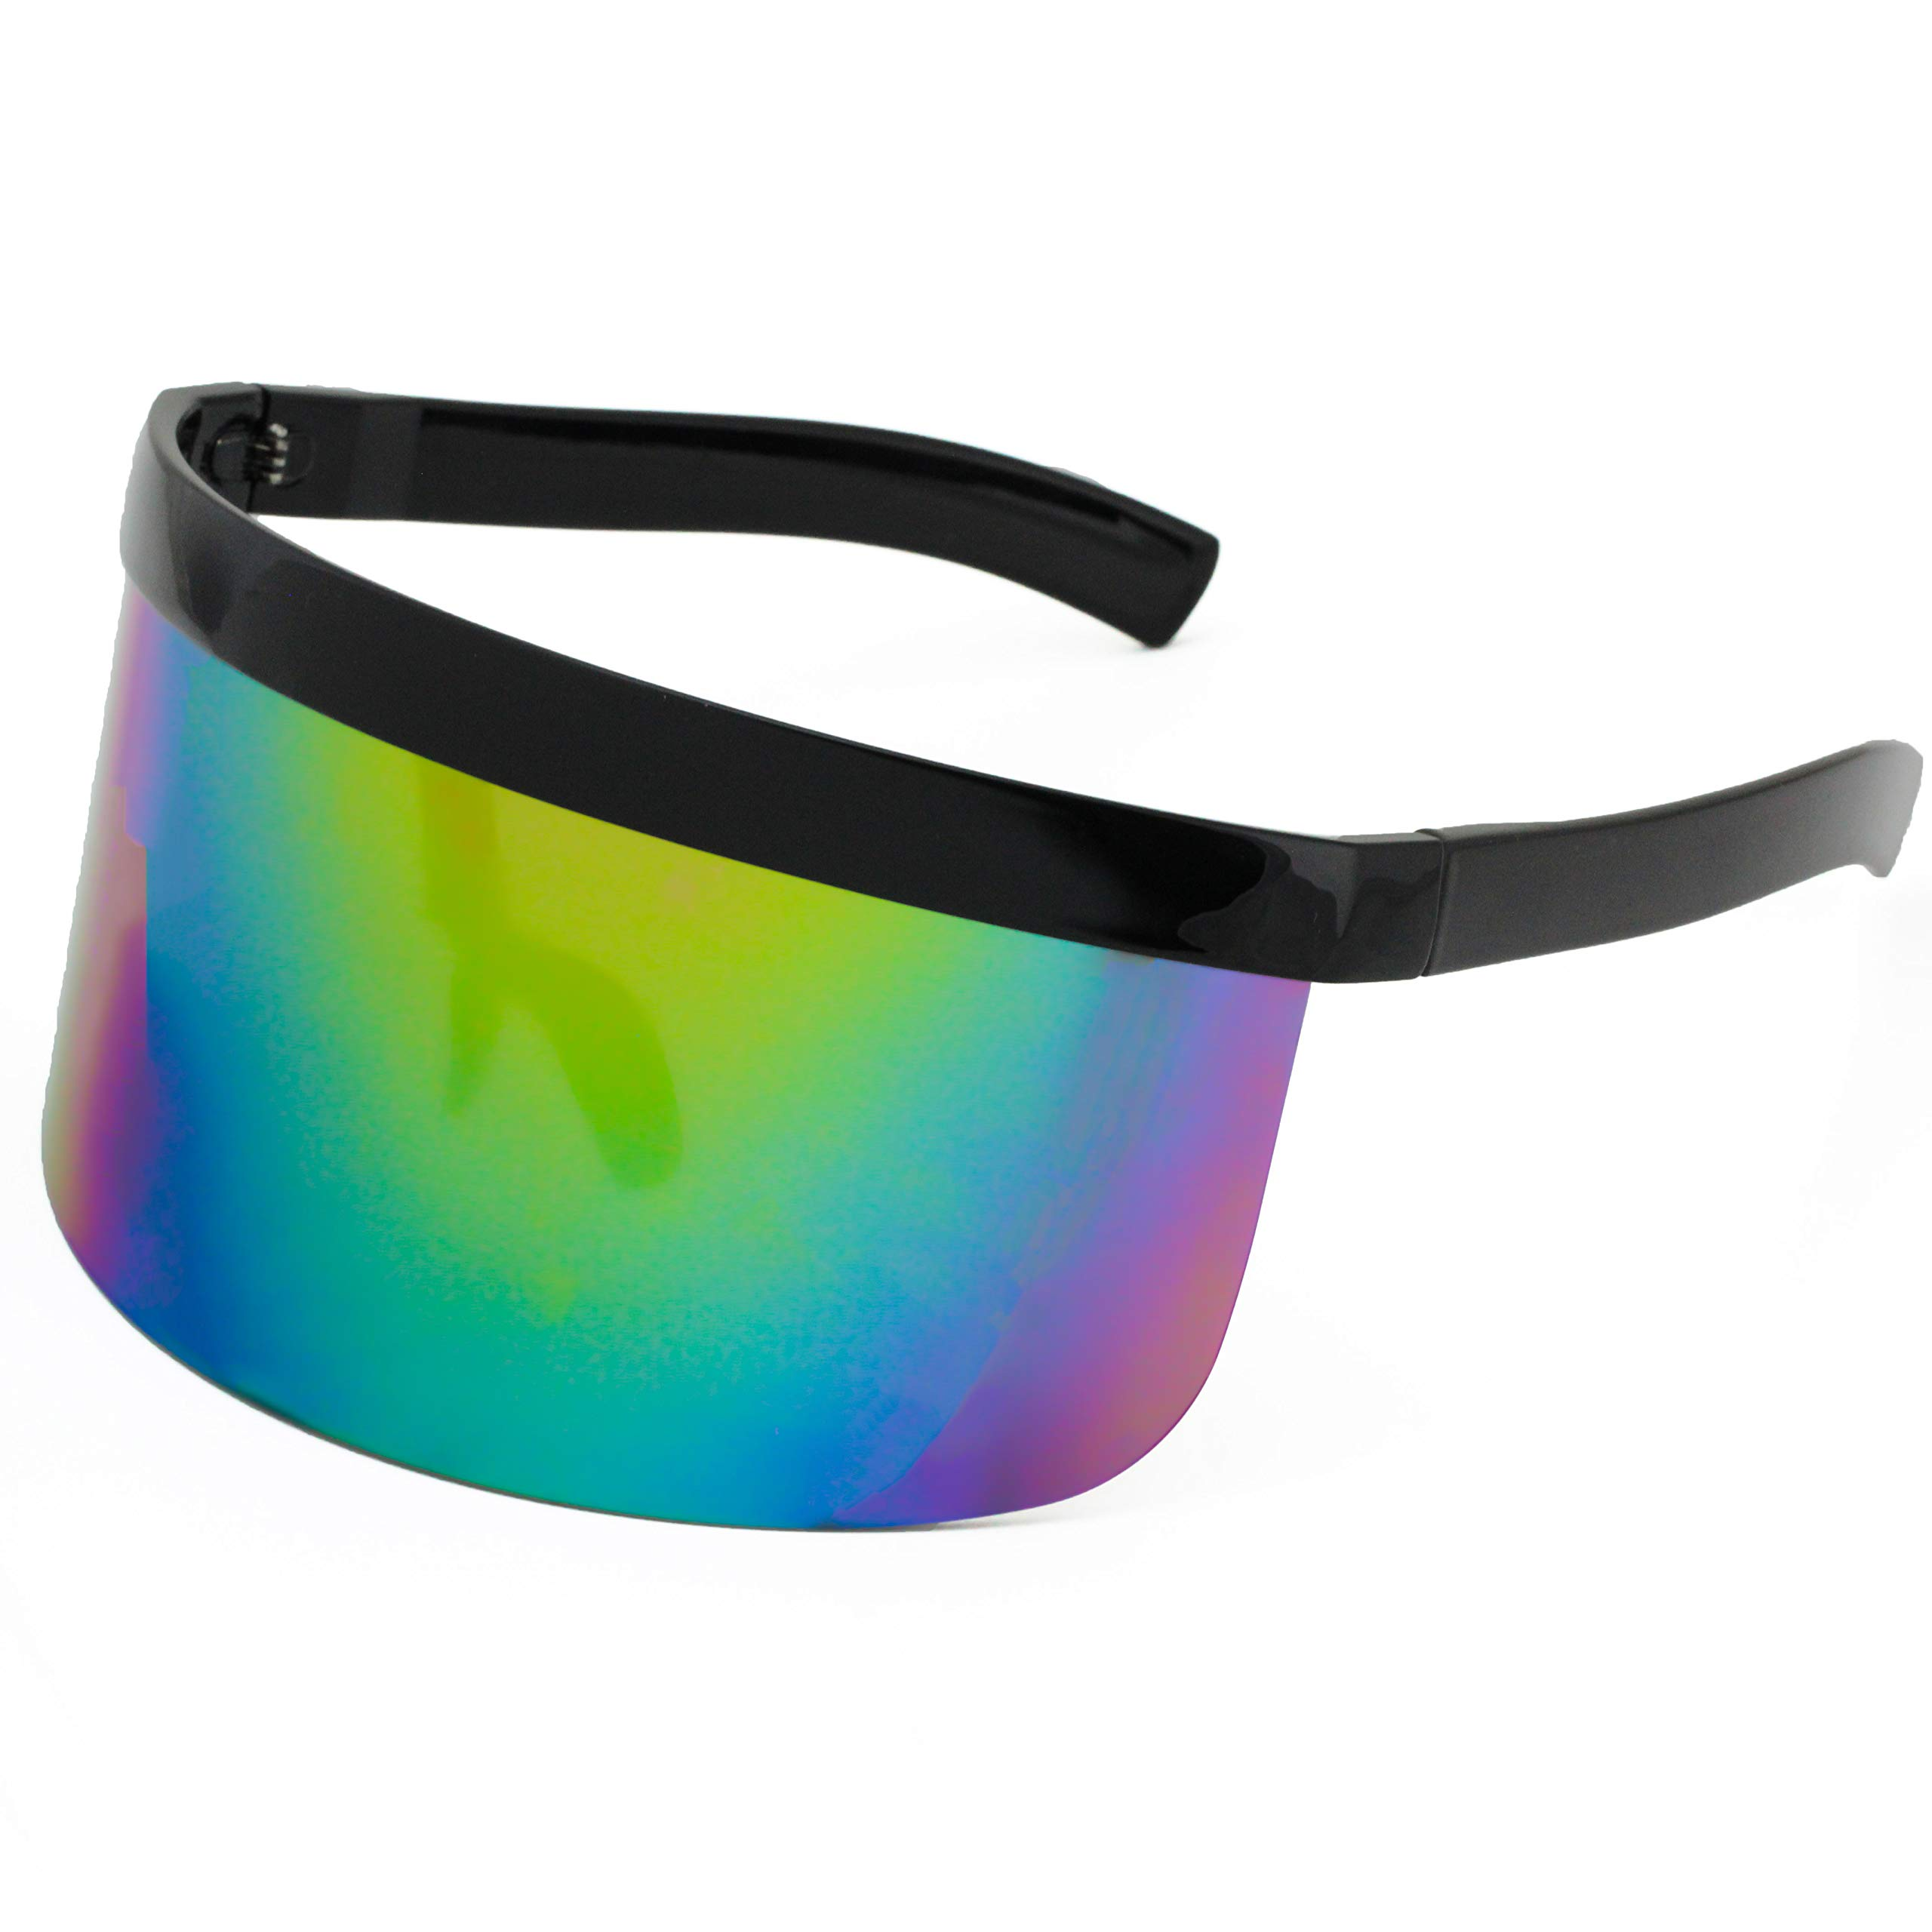 86e9eb340a Galleon - Elite Futuristic Oversize Shield Visor Sunglasses Flat Top  Mirrored Mono Lens 172mm (Rainbow Mirror